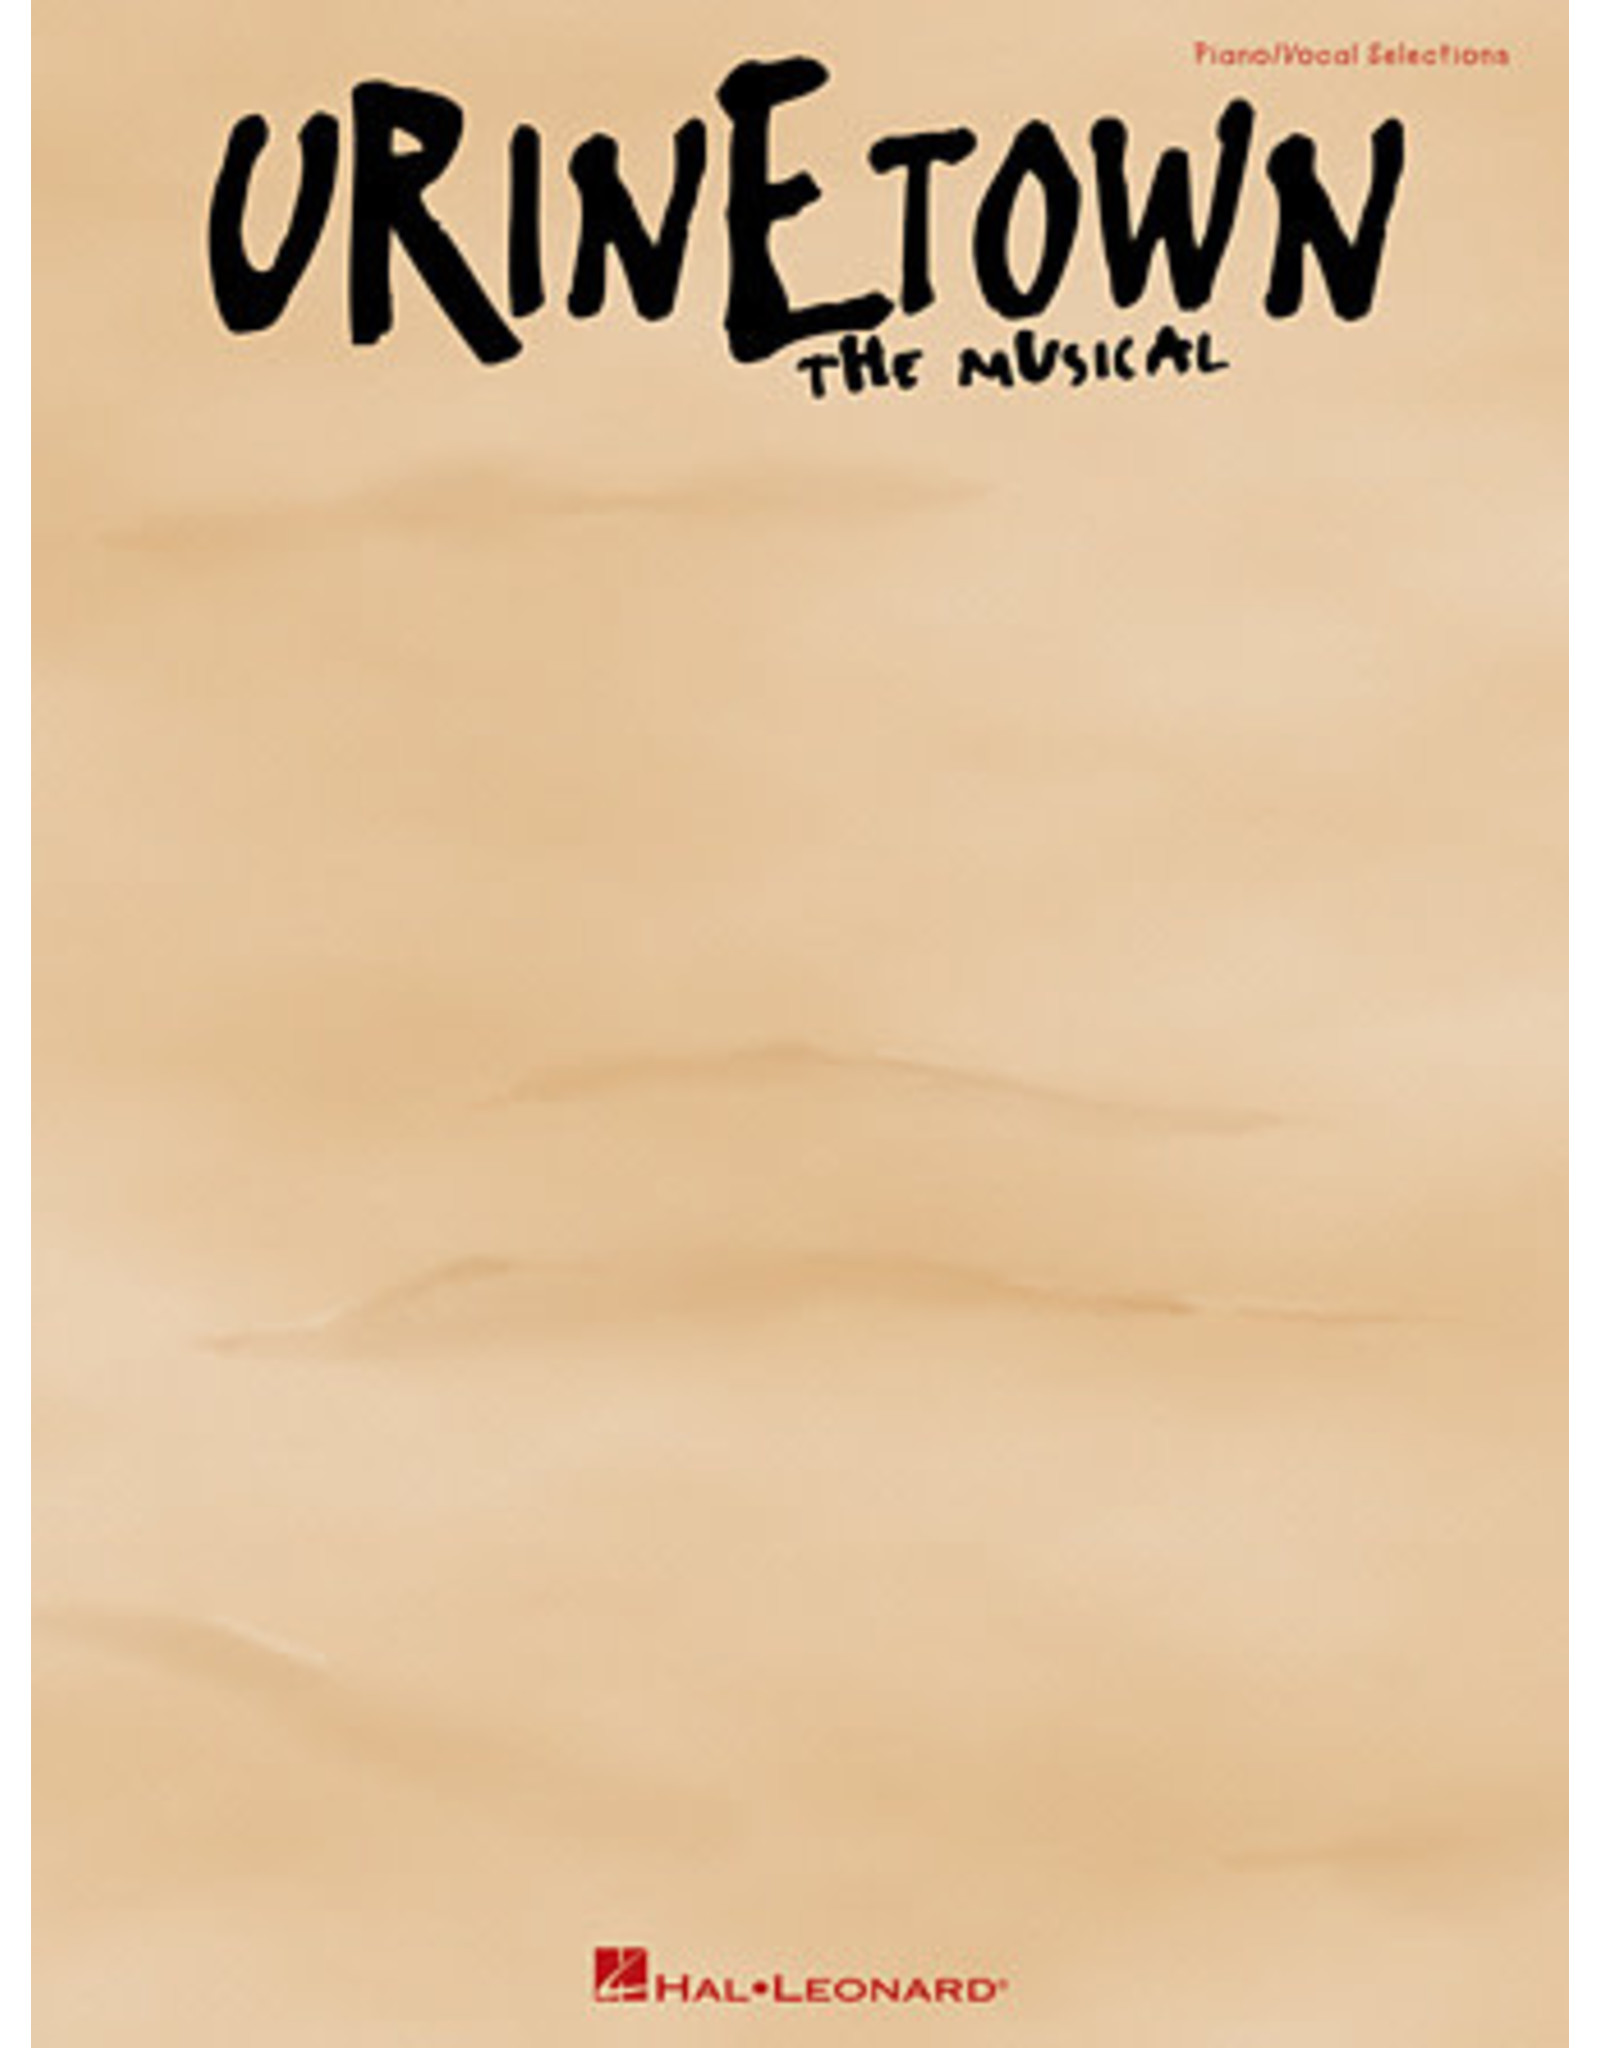 Hal Leonard Urinetown The Musical - Vocal Selections